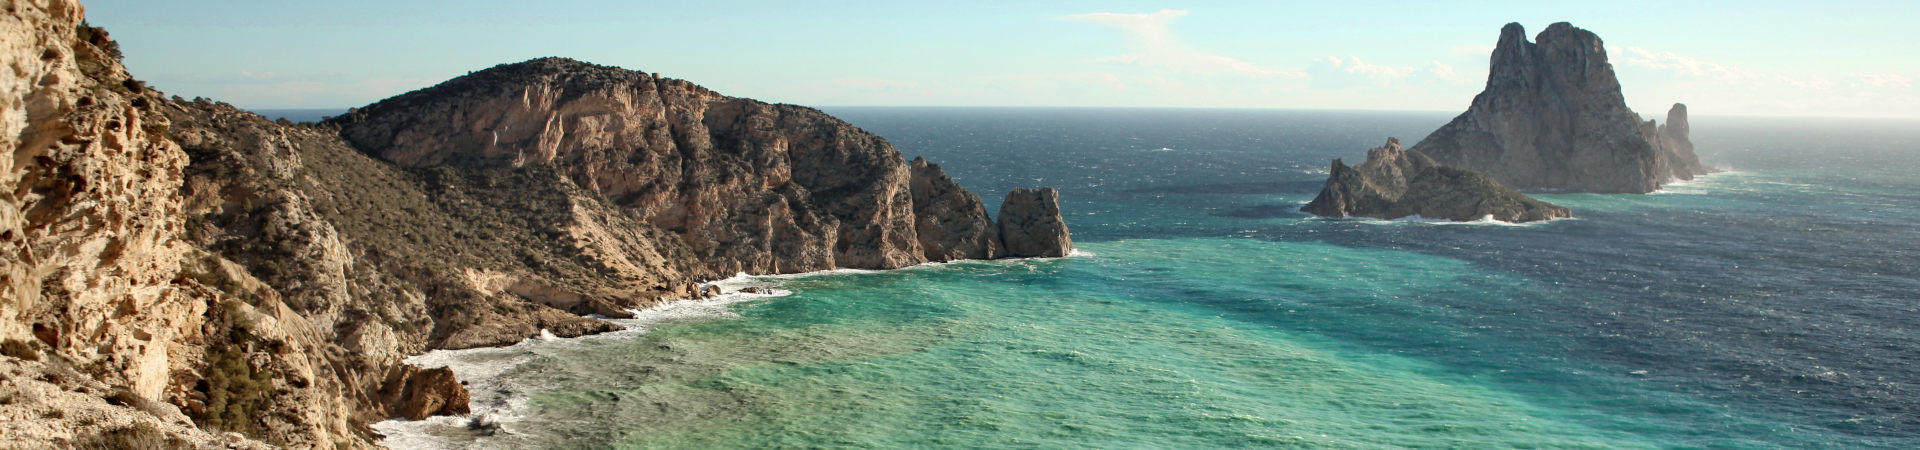 Resource image of the destination port Ibiza for the ferry route Denia - Ibiza